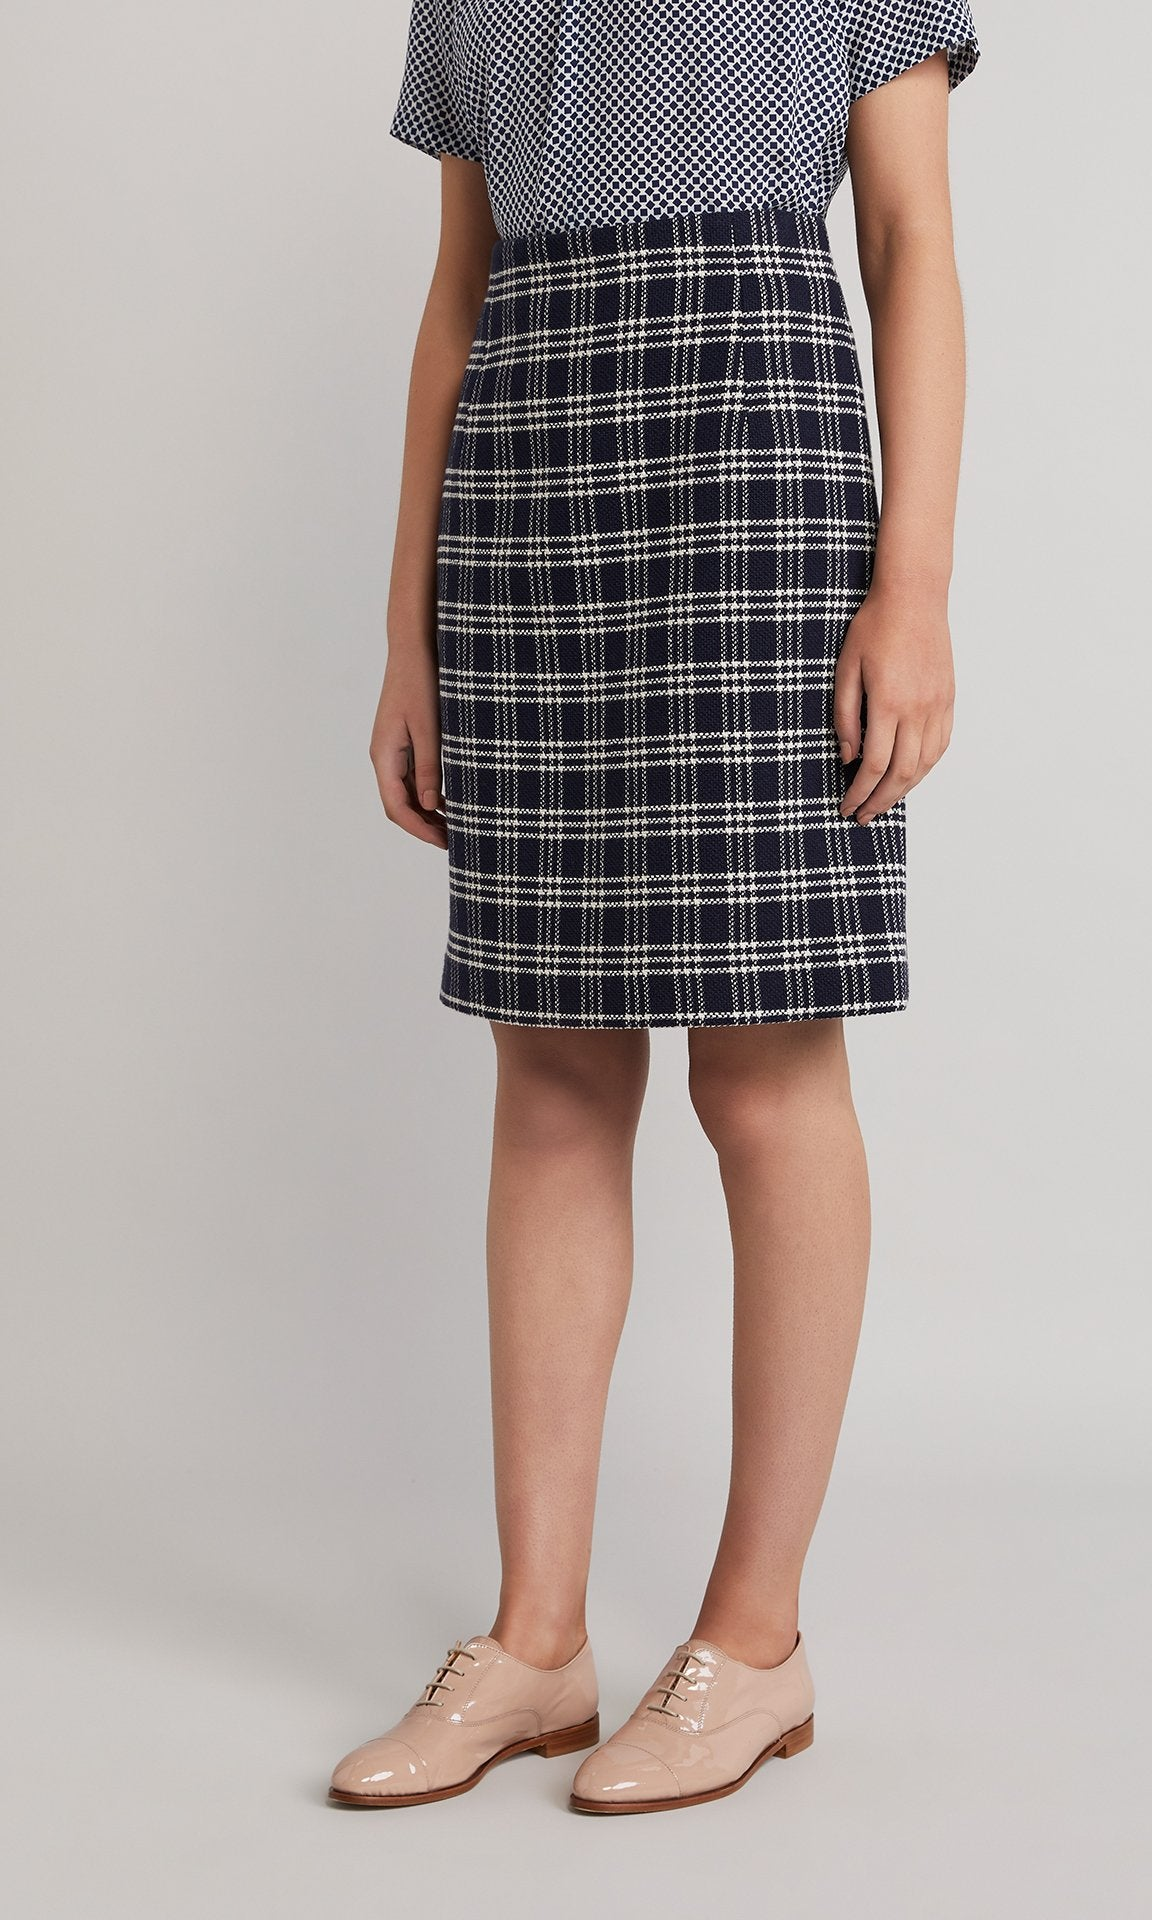 Piper Skirt - Navy/Creme